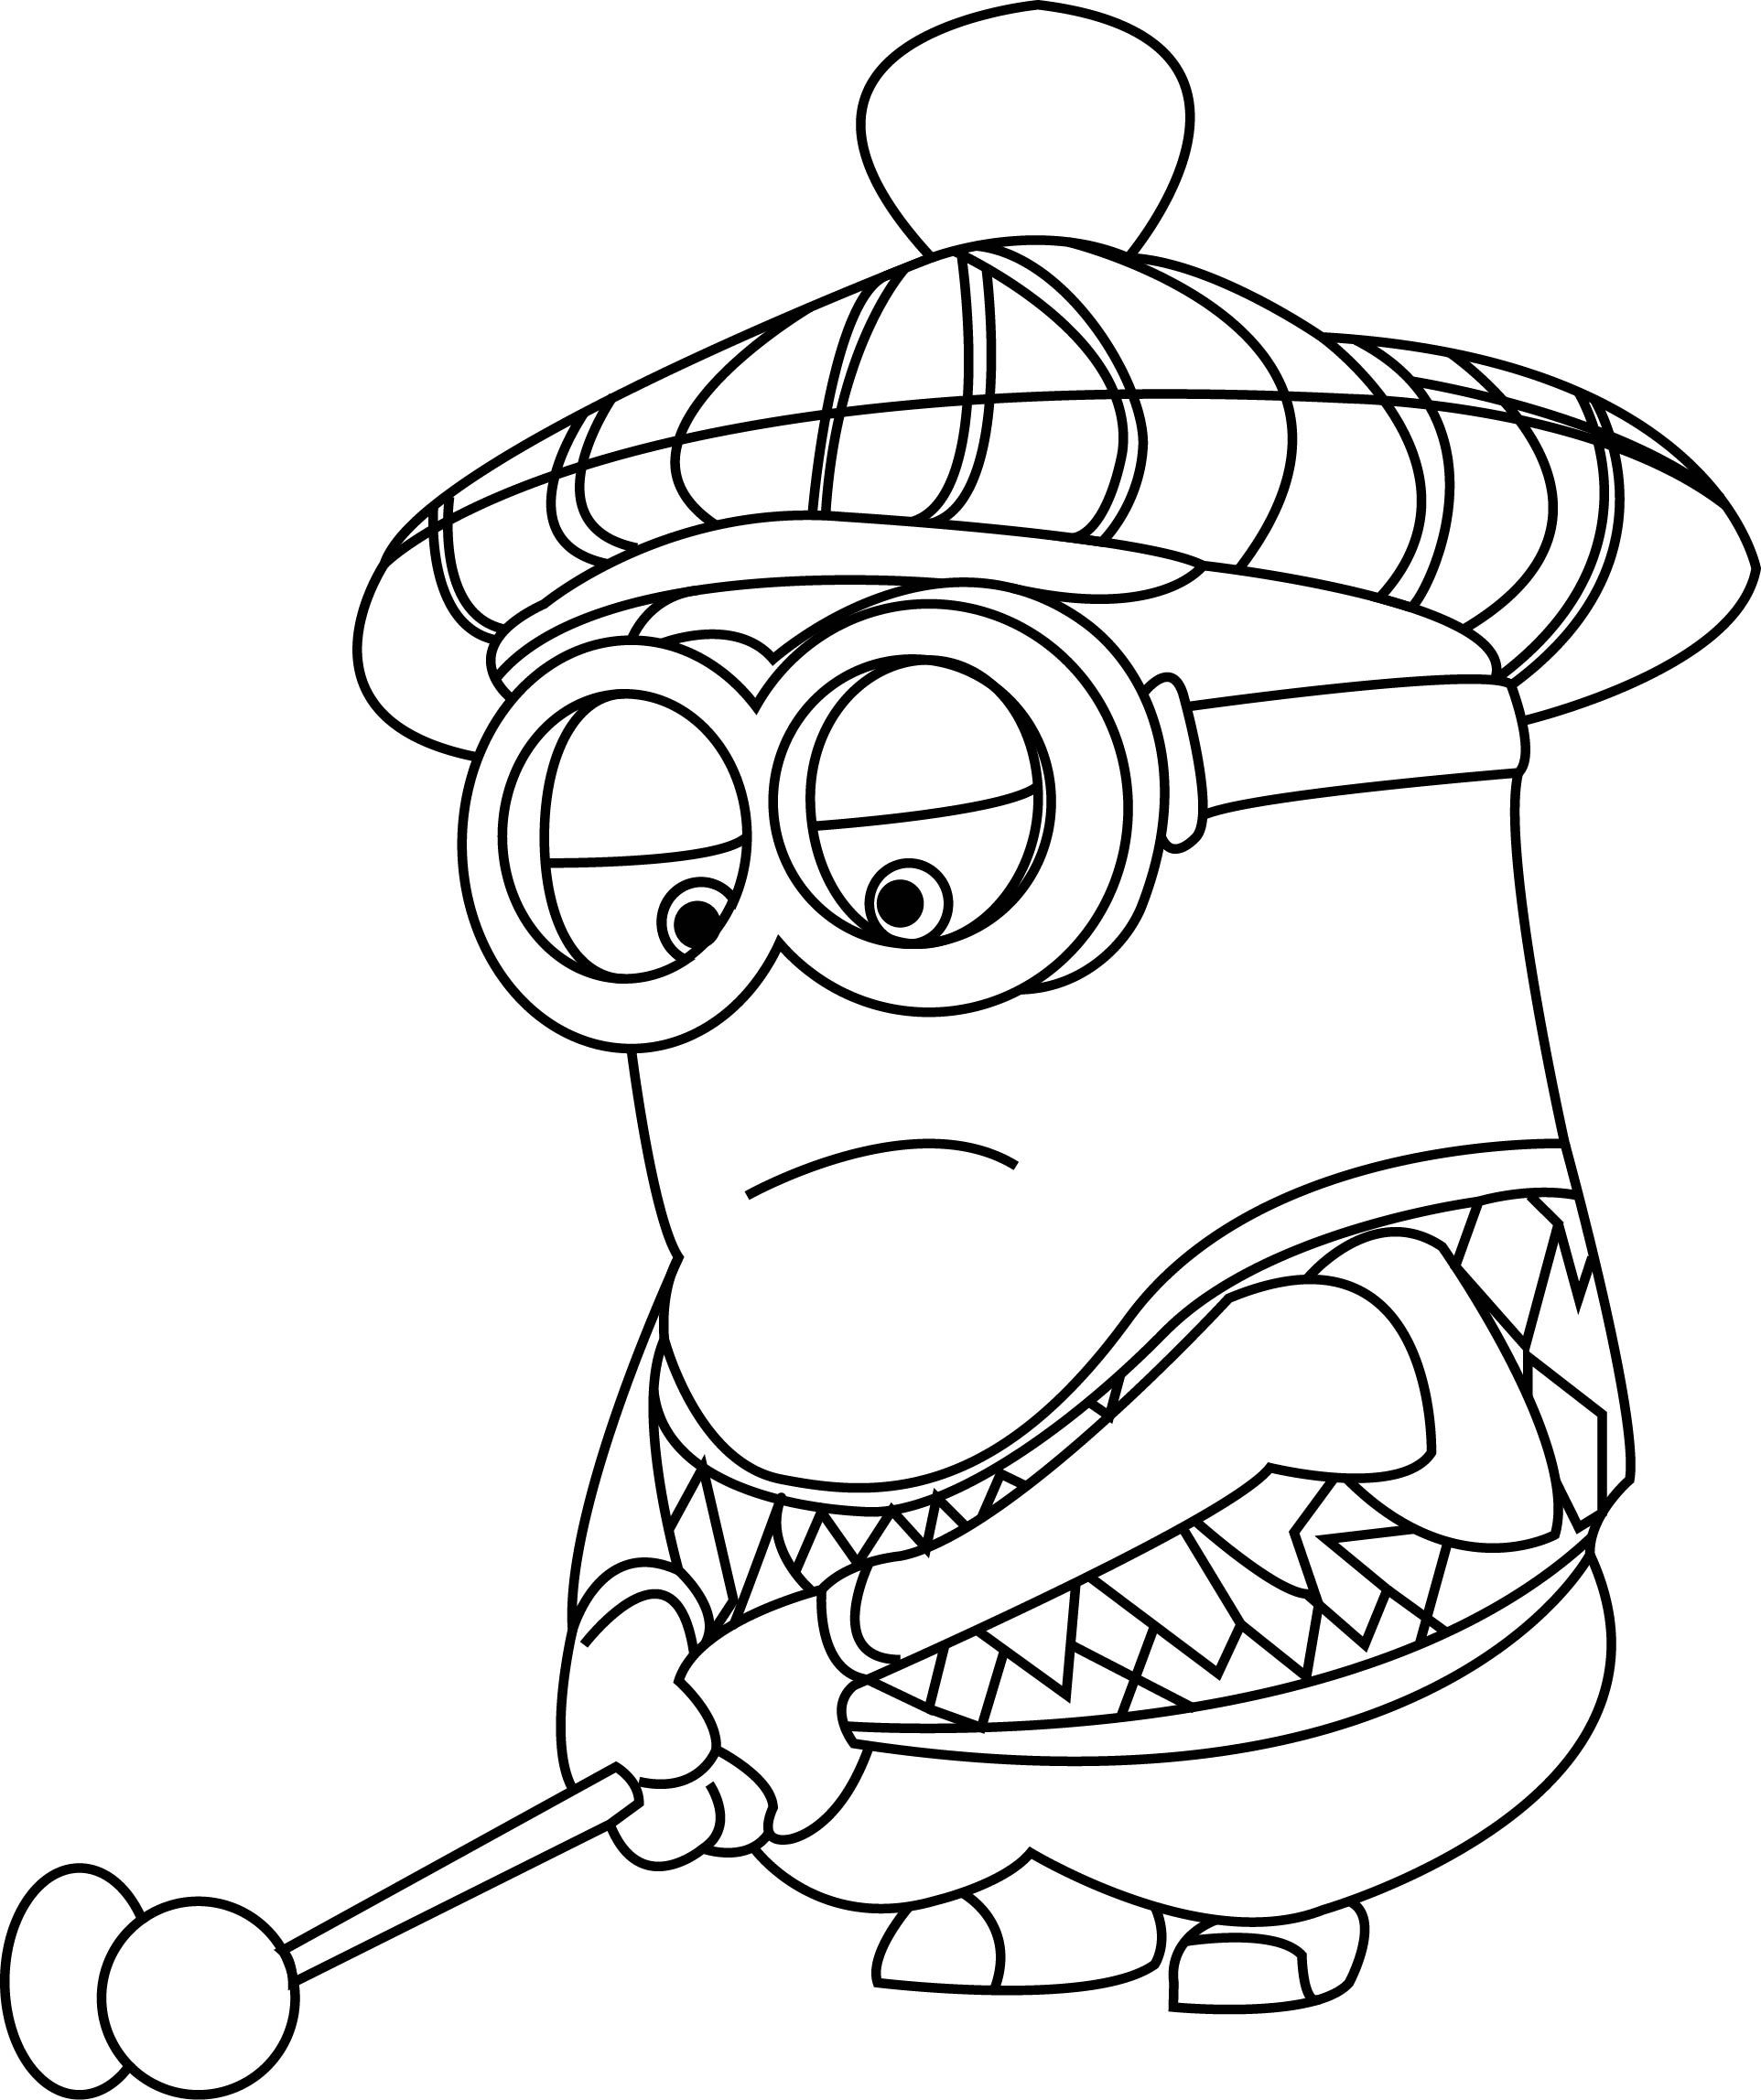 despicable me coloring pictures despicable me coloring pages free printable coloring coloring despicable me pictures